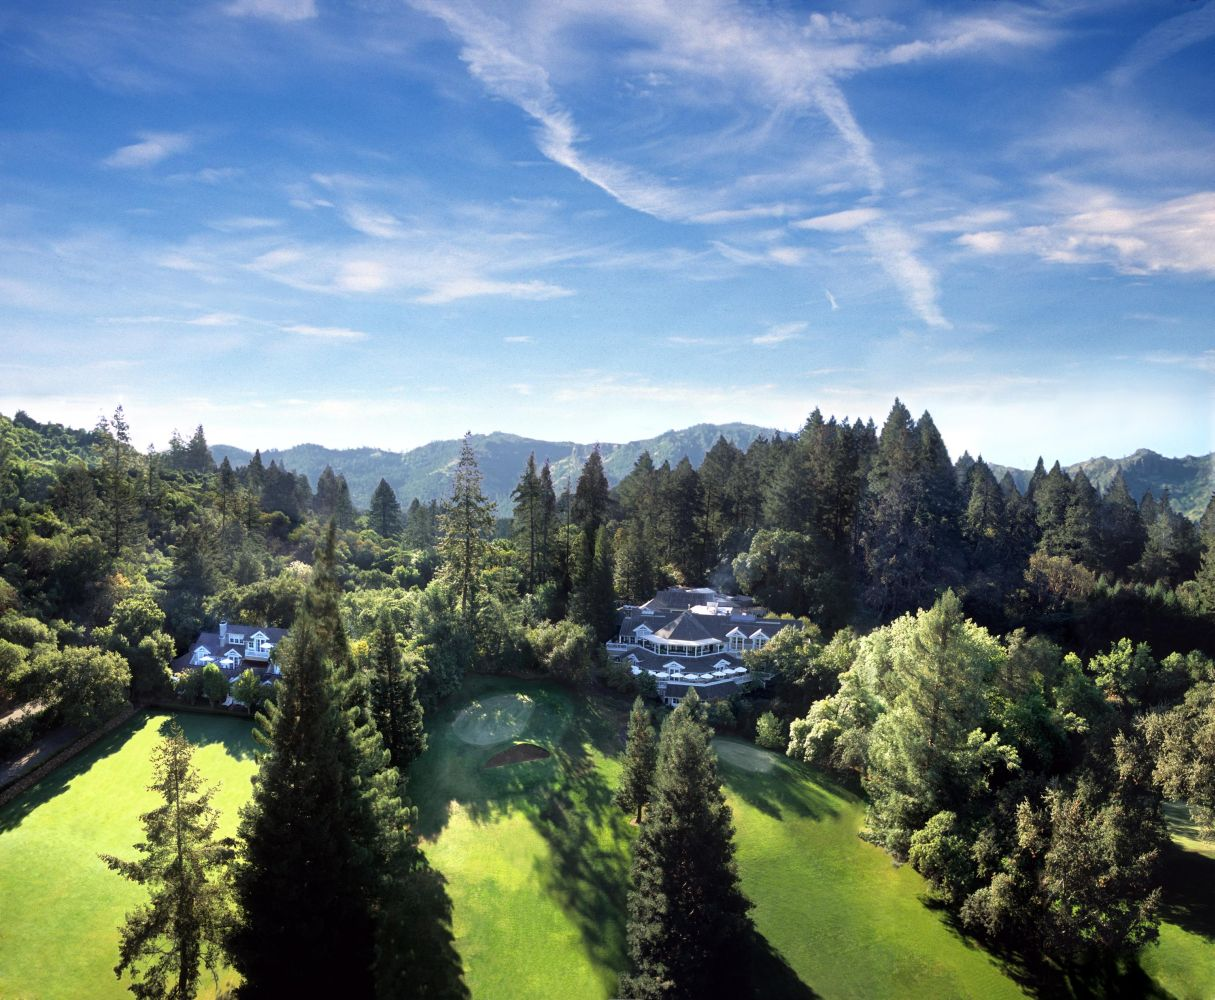 meadowood resort & spa - napa valley